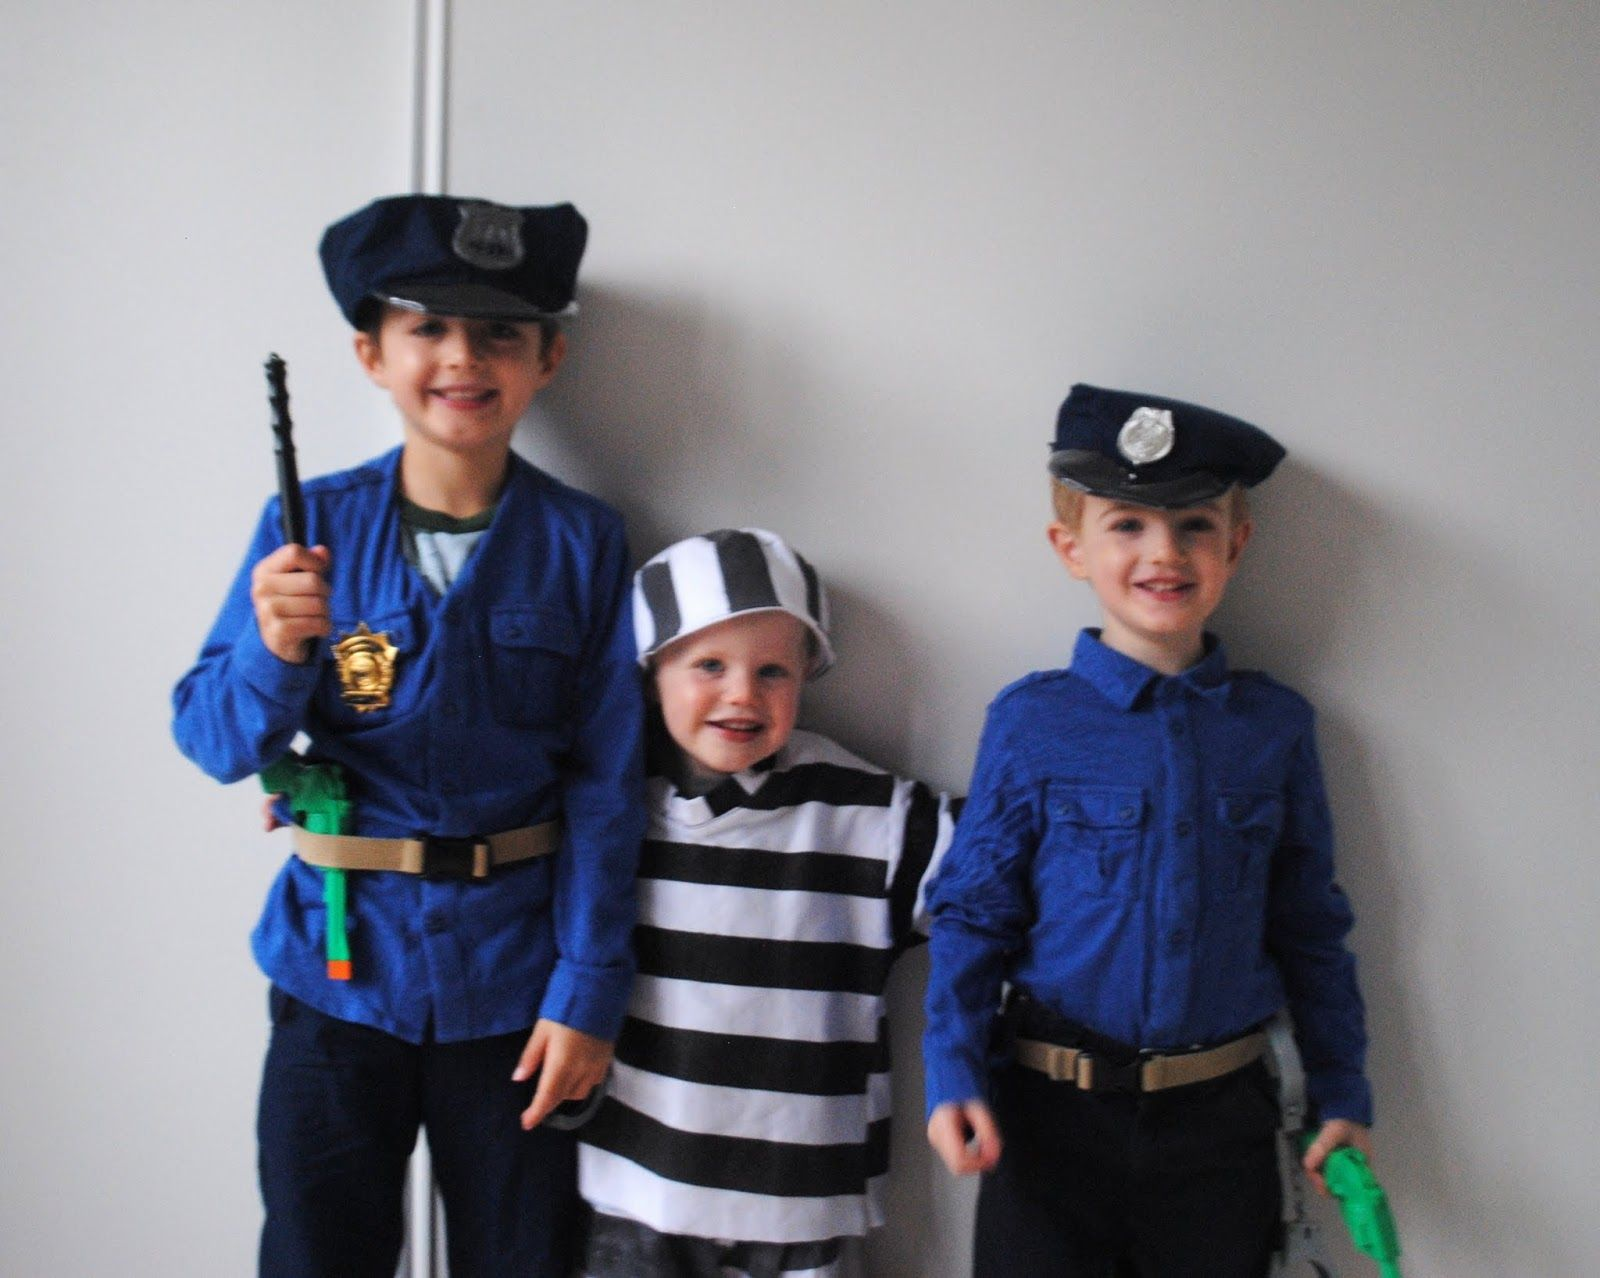 Faschingskostüme Für Kinder Polizei Boy Oh Boy Oh Boy Crafts Printable Police Hat Sewing